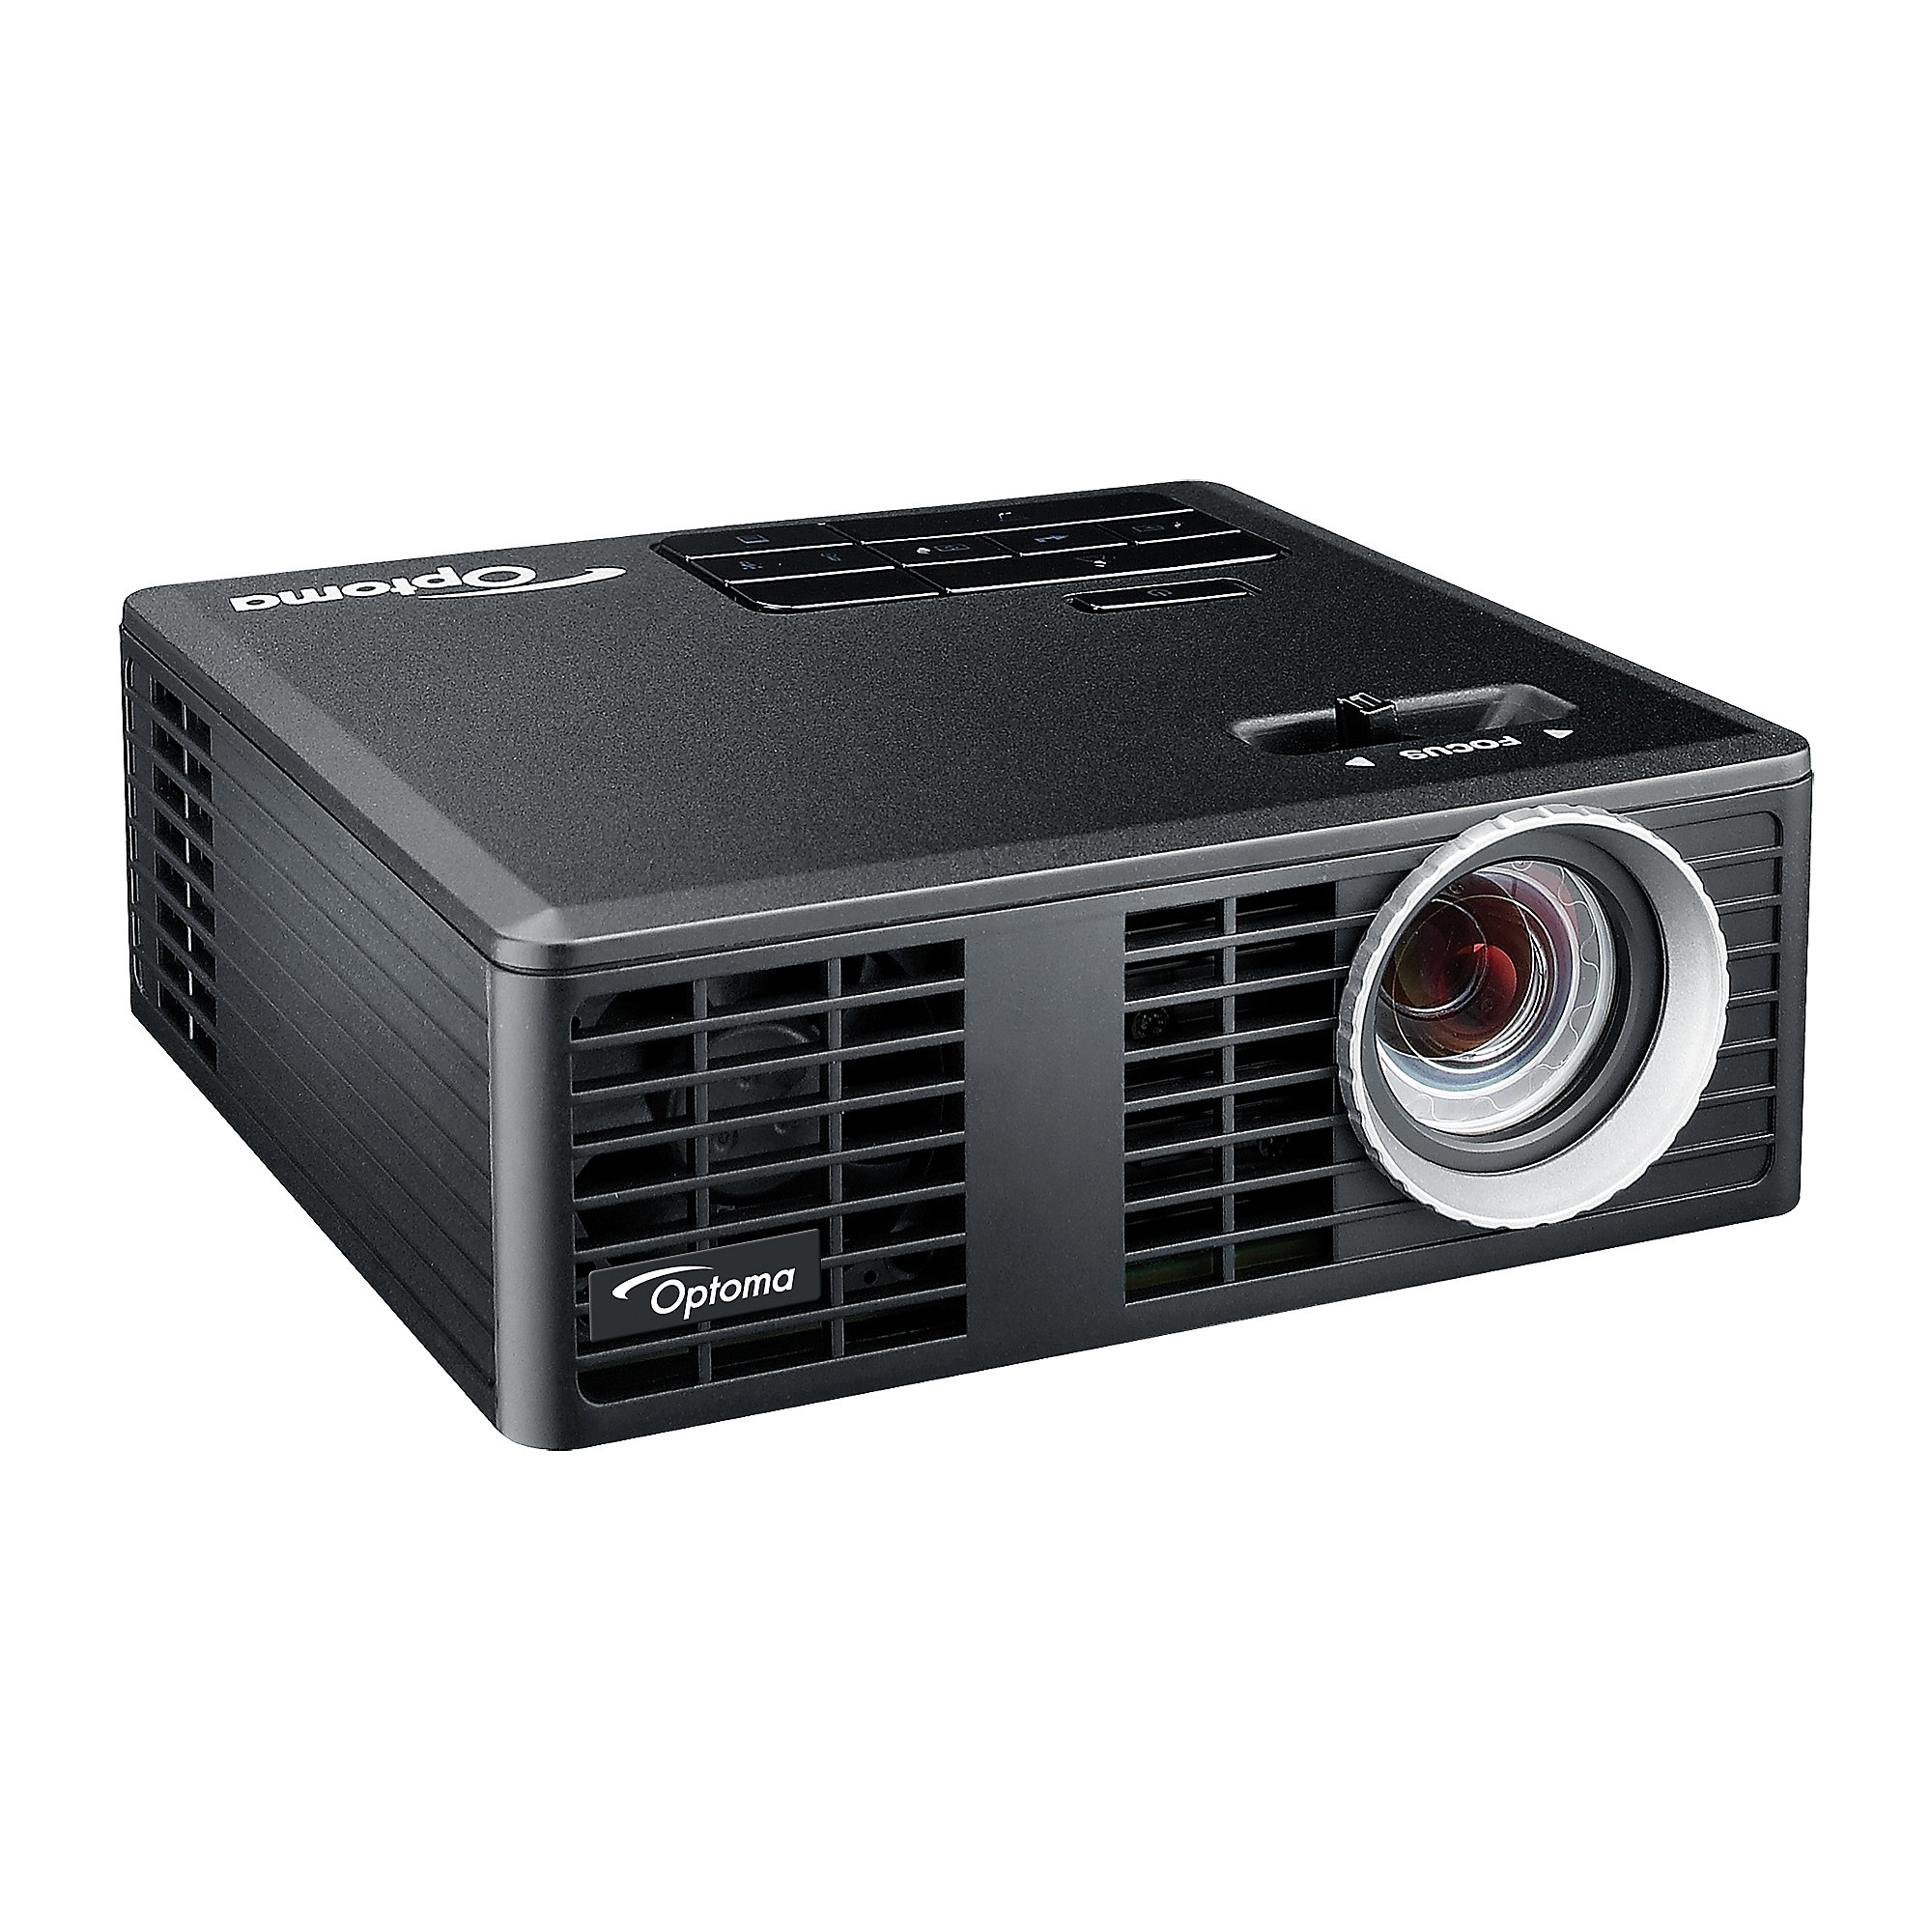 Optoma ML750e mobiler LED-Beamer 700 ANSI-Lumen 3D-Ready VGA/HDMI/USB/WLAN